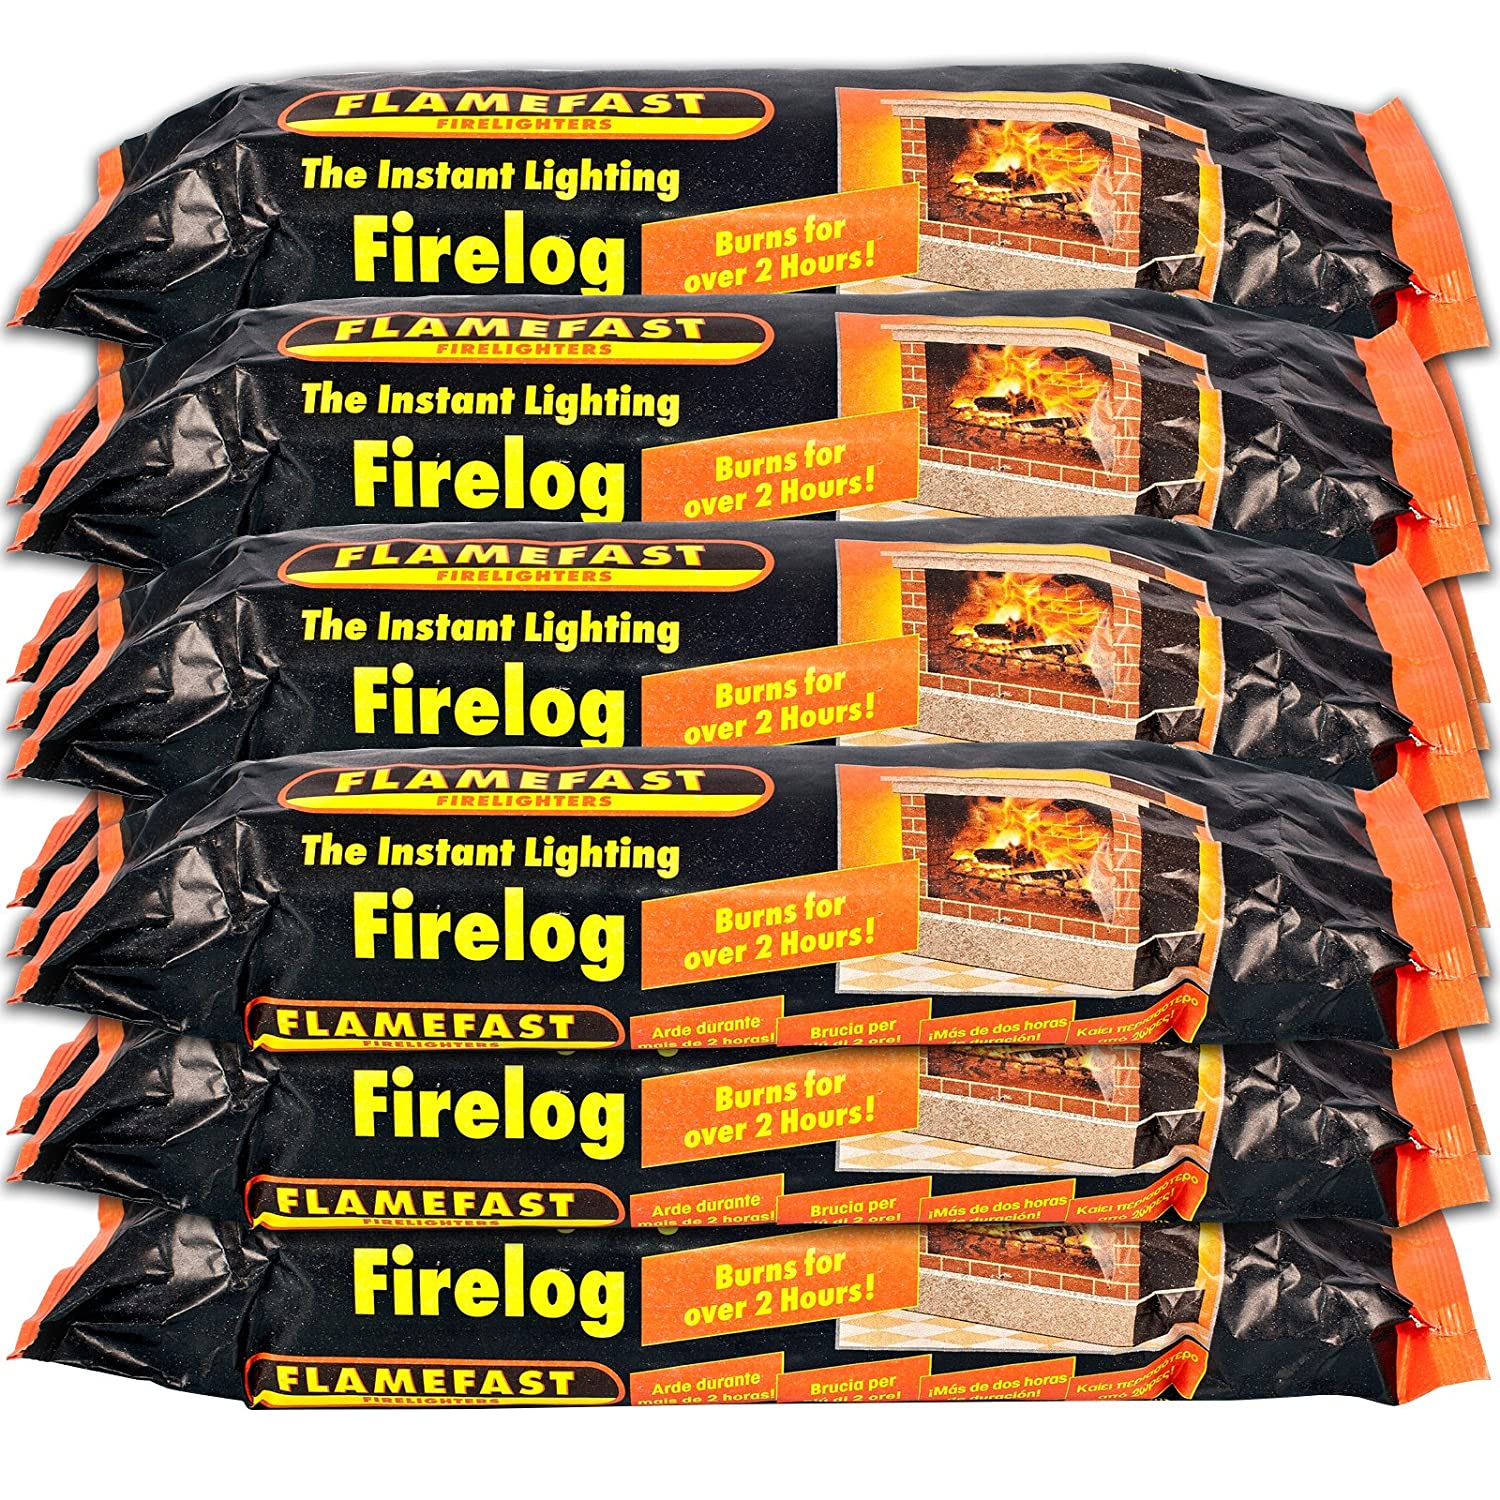 FLAMEFAST FIRELIGHTERS THE INSTANT LIGHTNING FIRE LOG CASE OF 12 BURNS FOR UPTO 2 HOURS